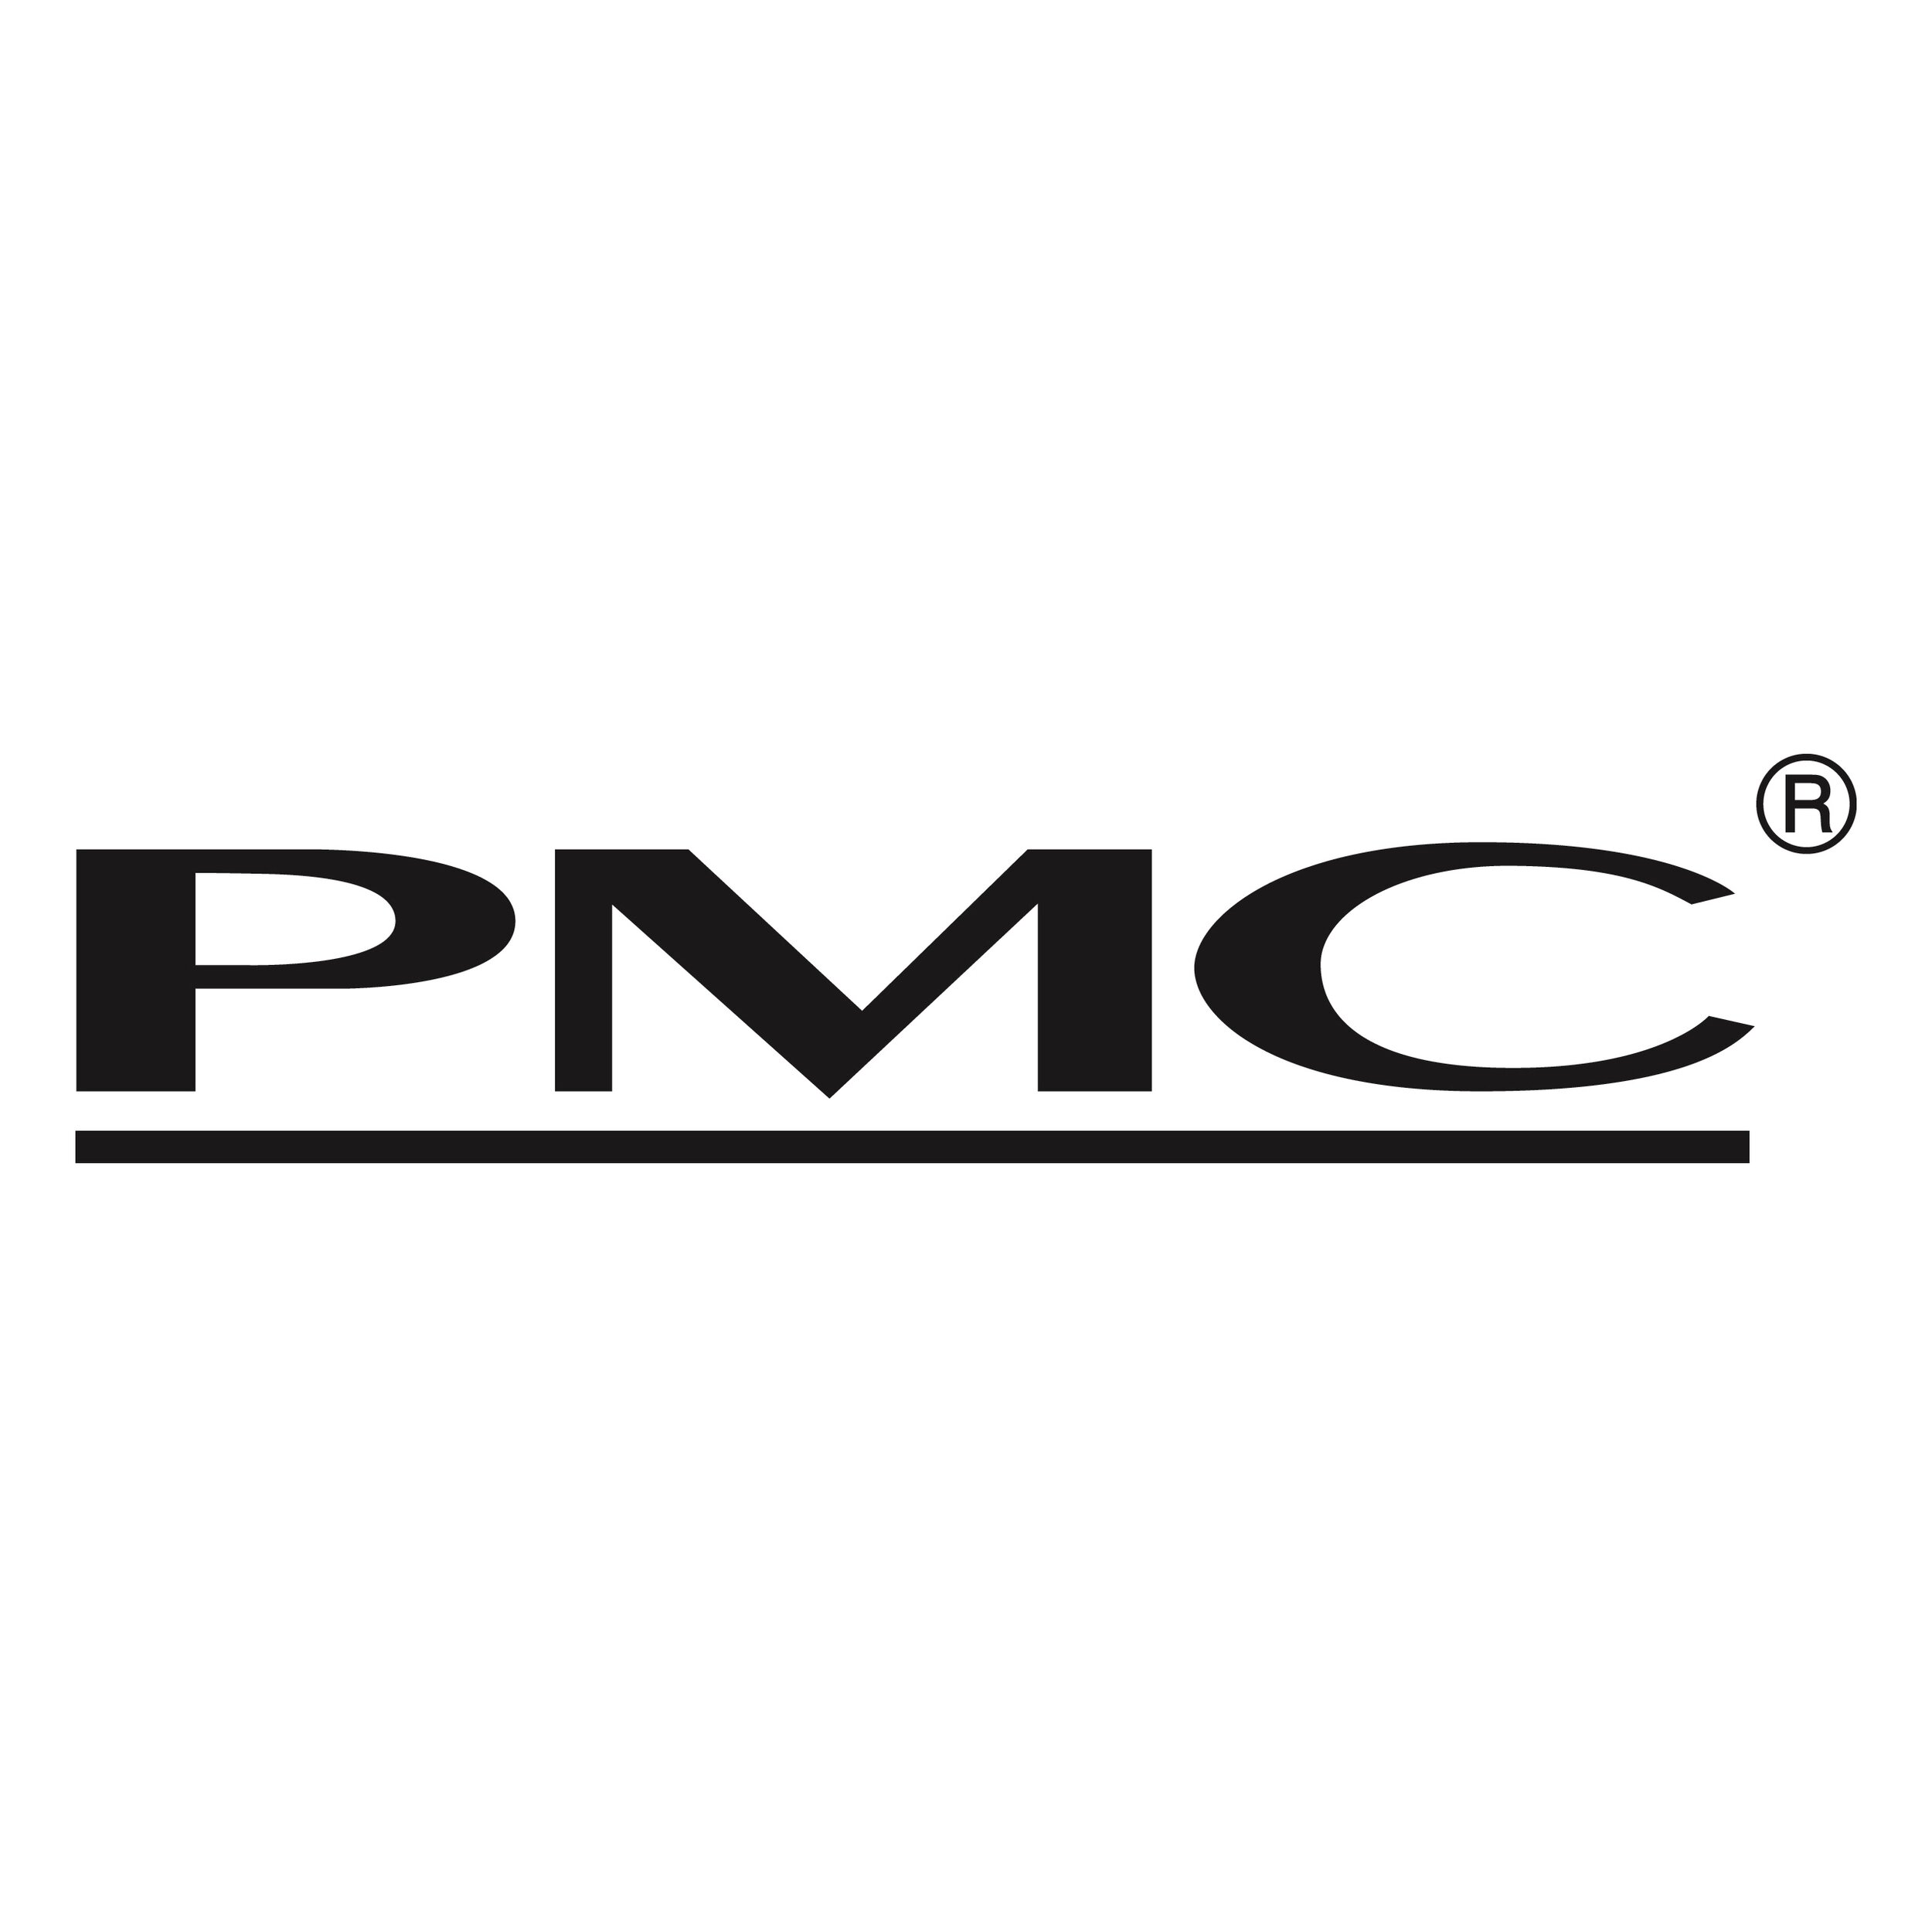 pmc-logo-no-dots.jpg